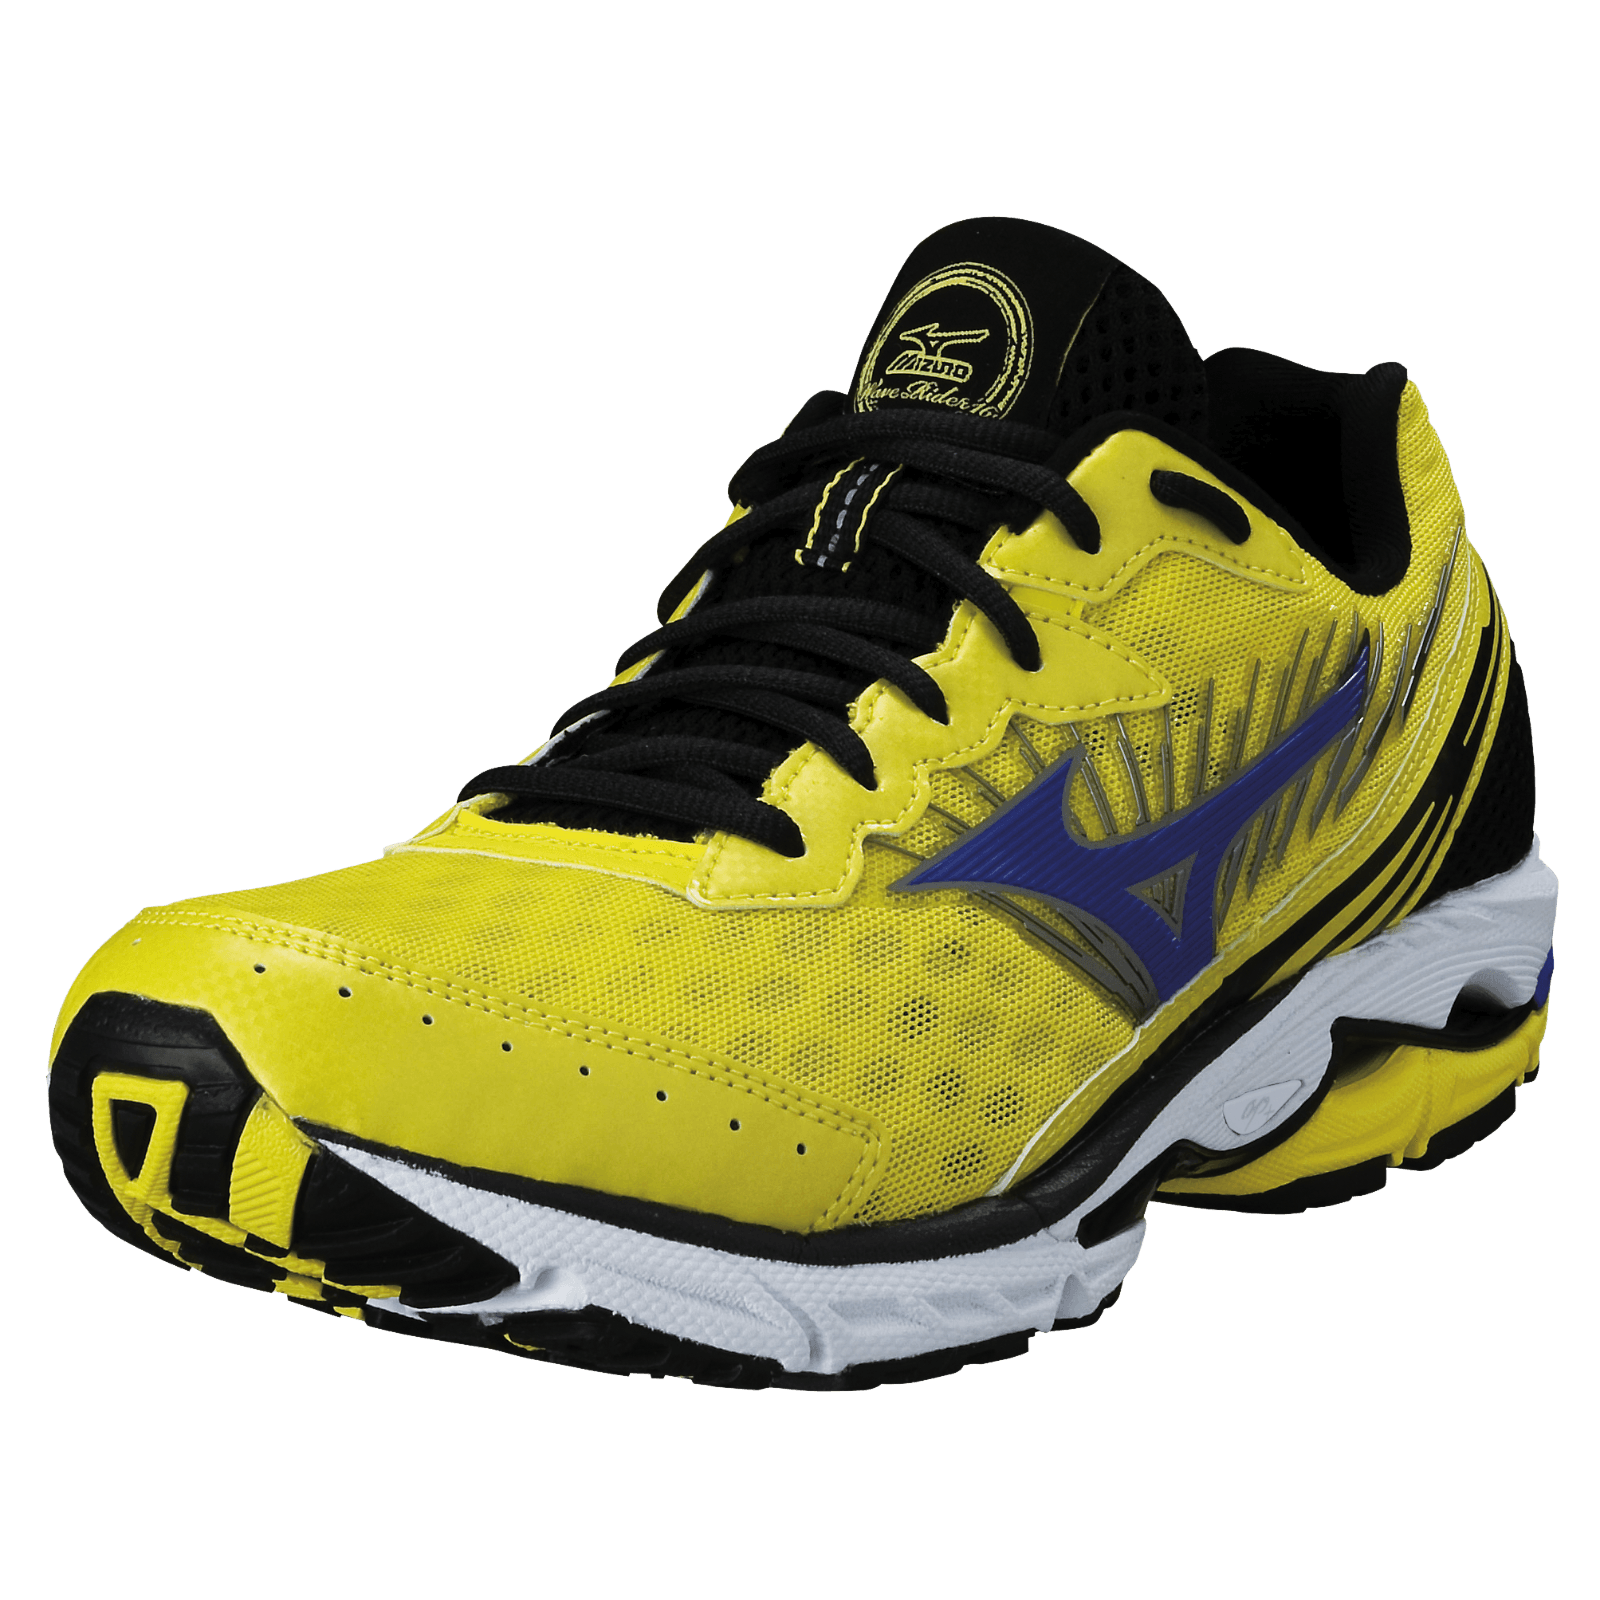 Mizuno Running Shoes Png Image PNG Image